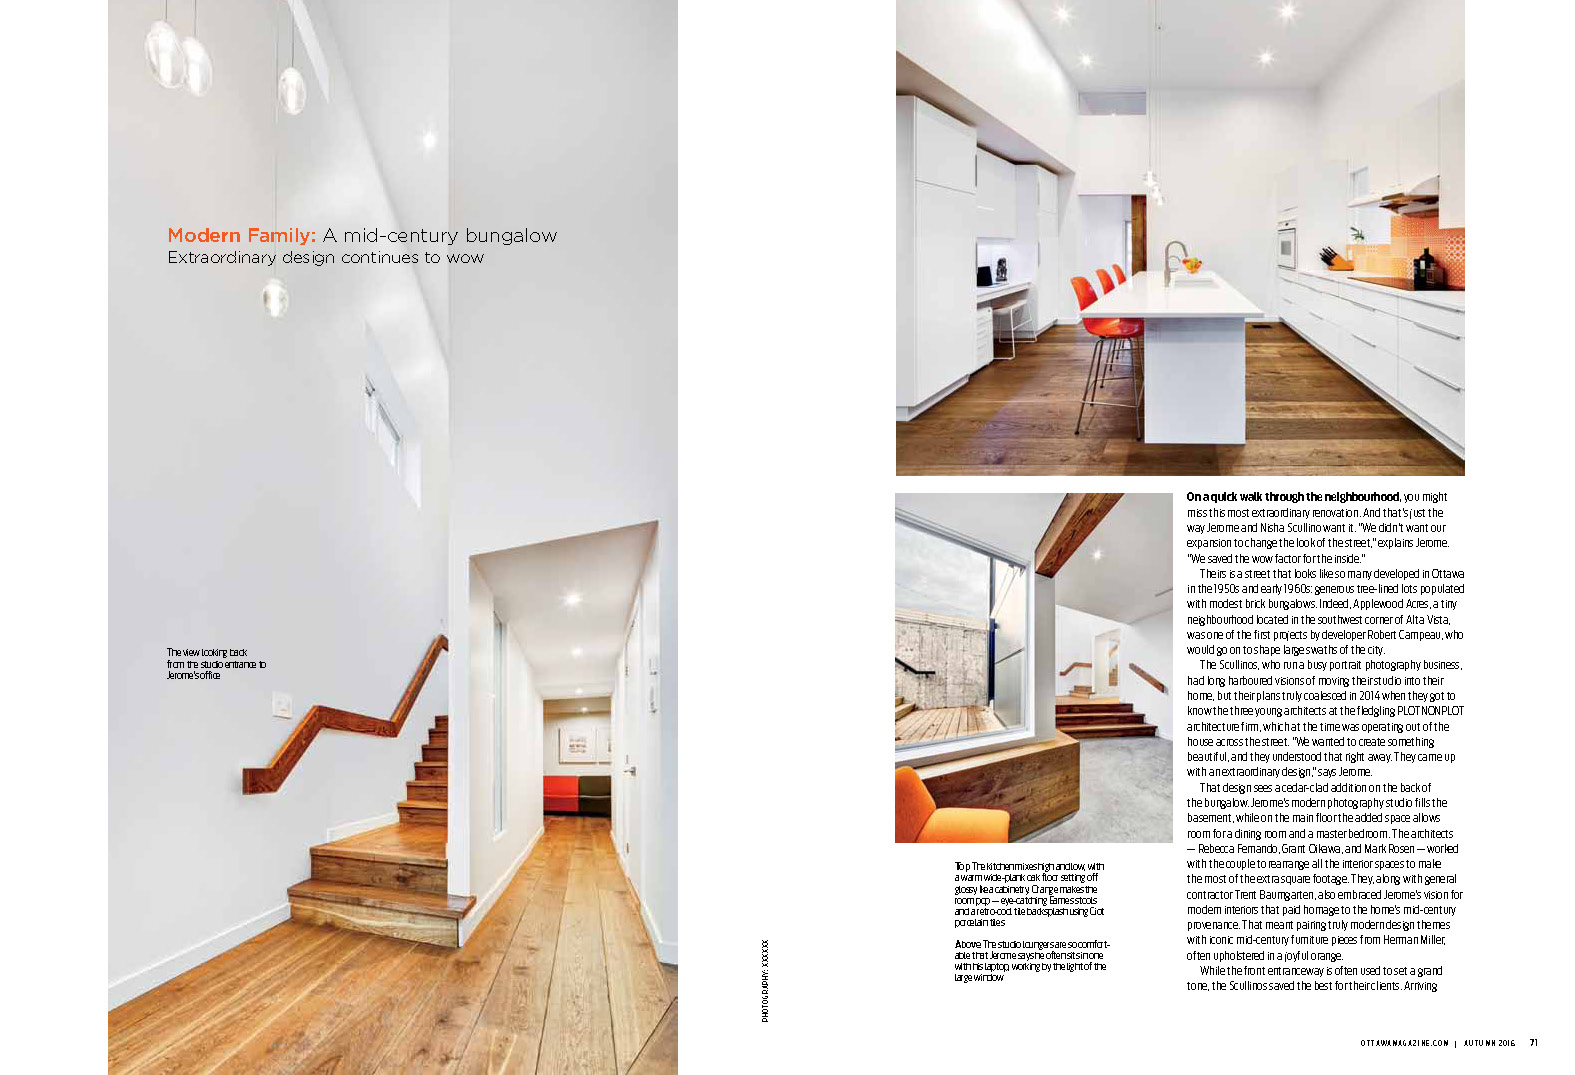 2016.08.01 Great Spaces.jpg